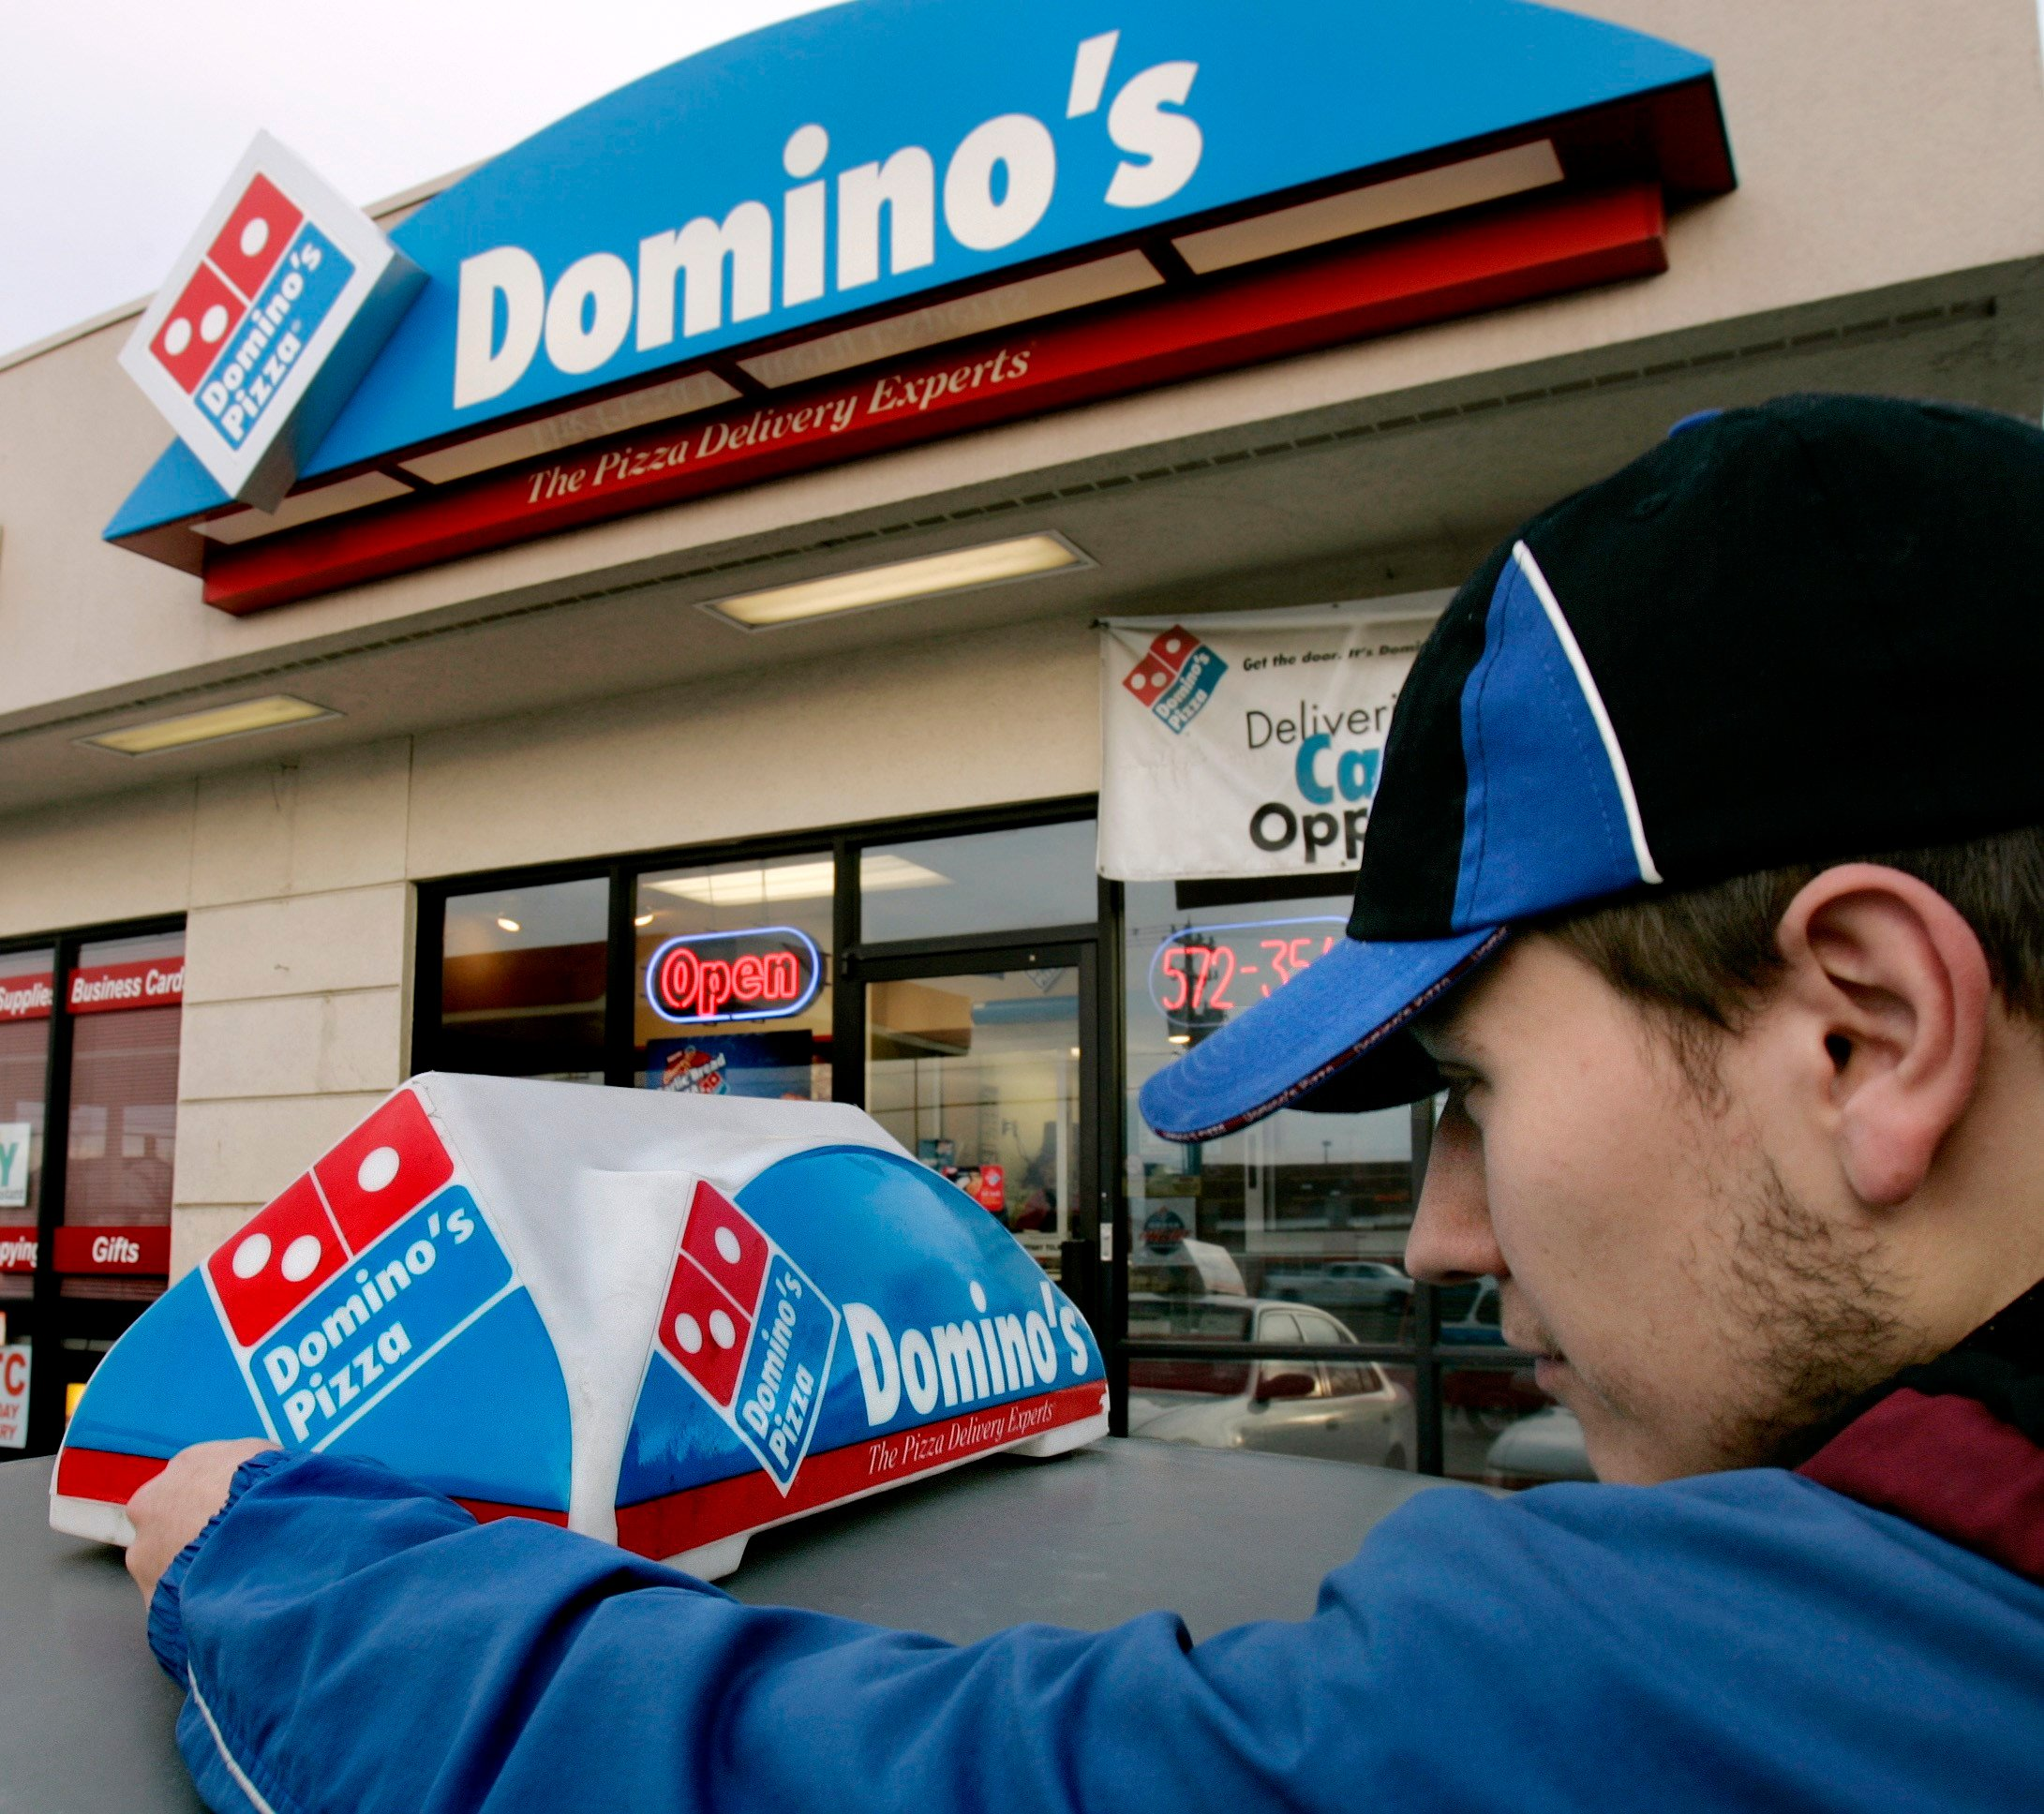 Domino's will deliver pizza to the beach